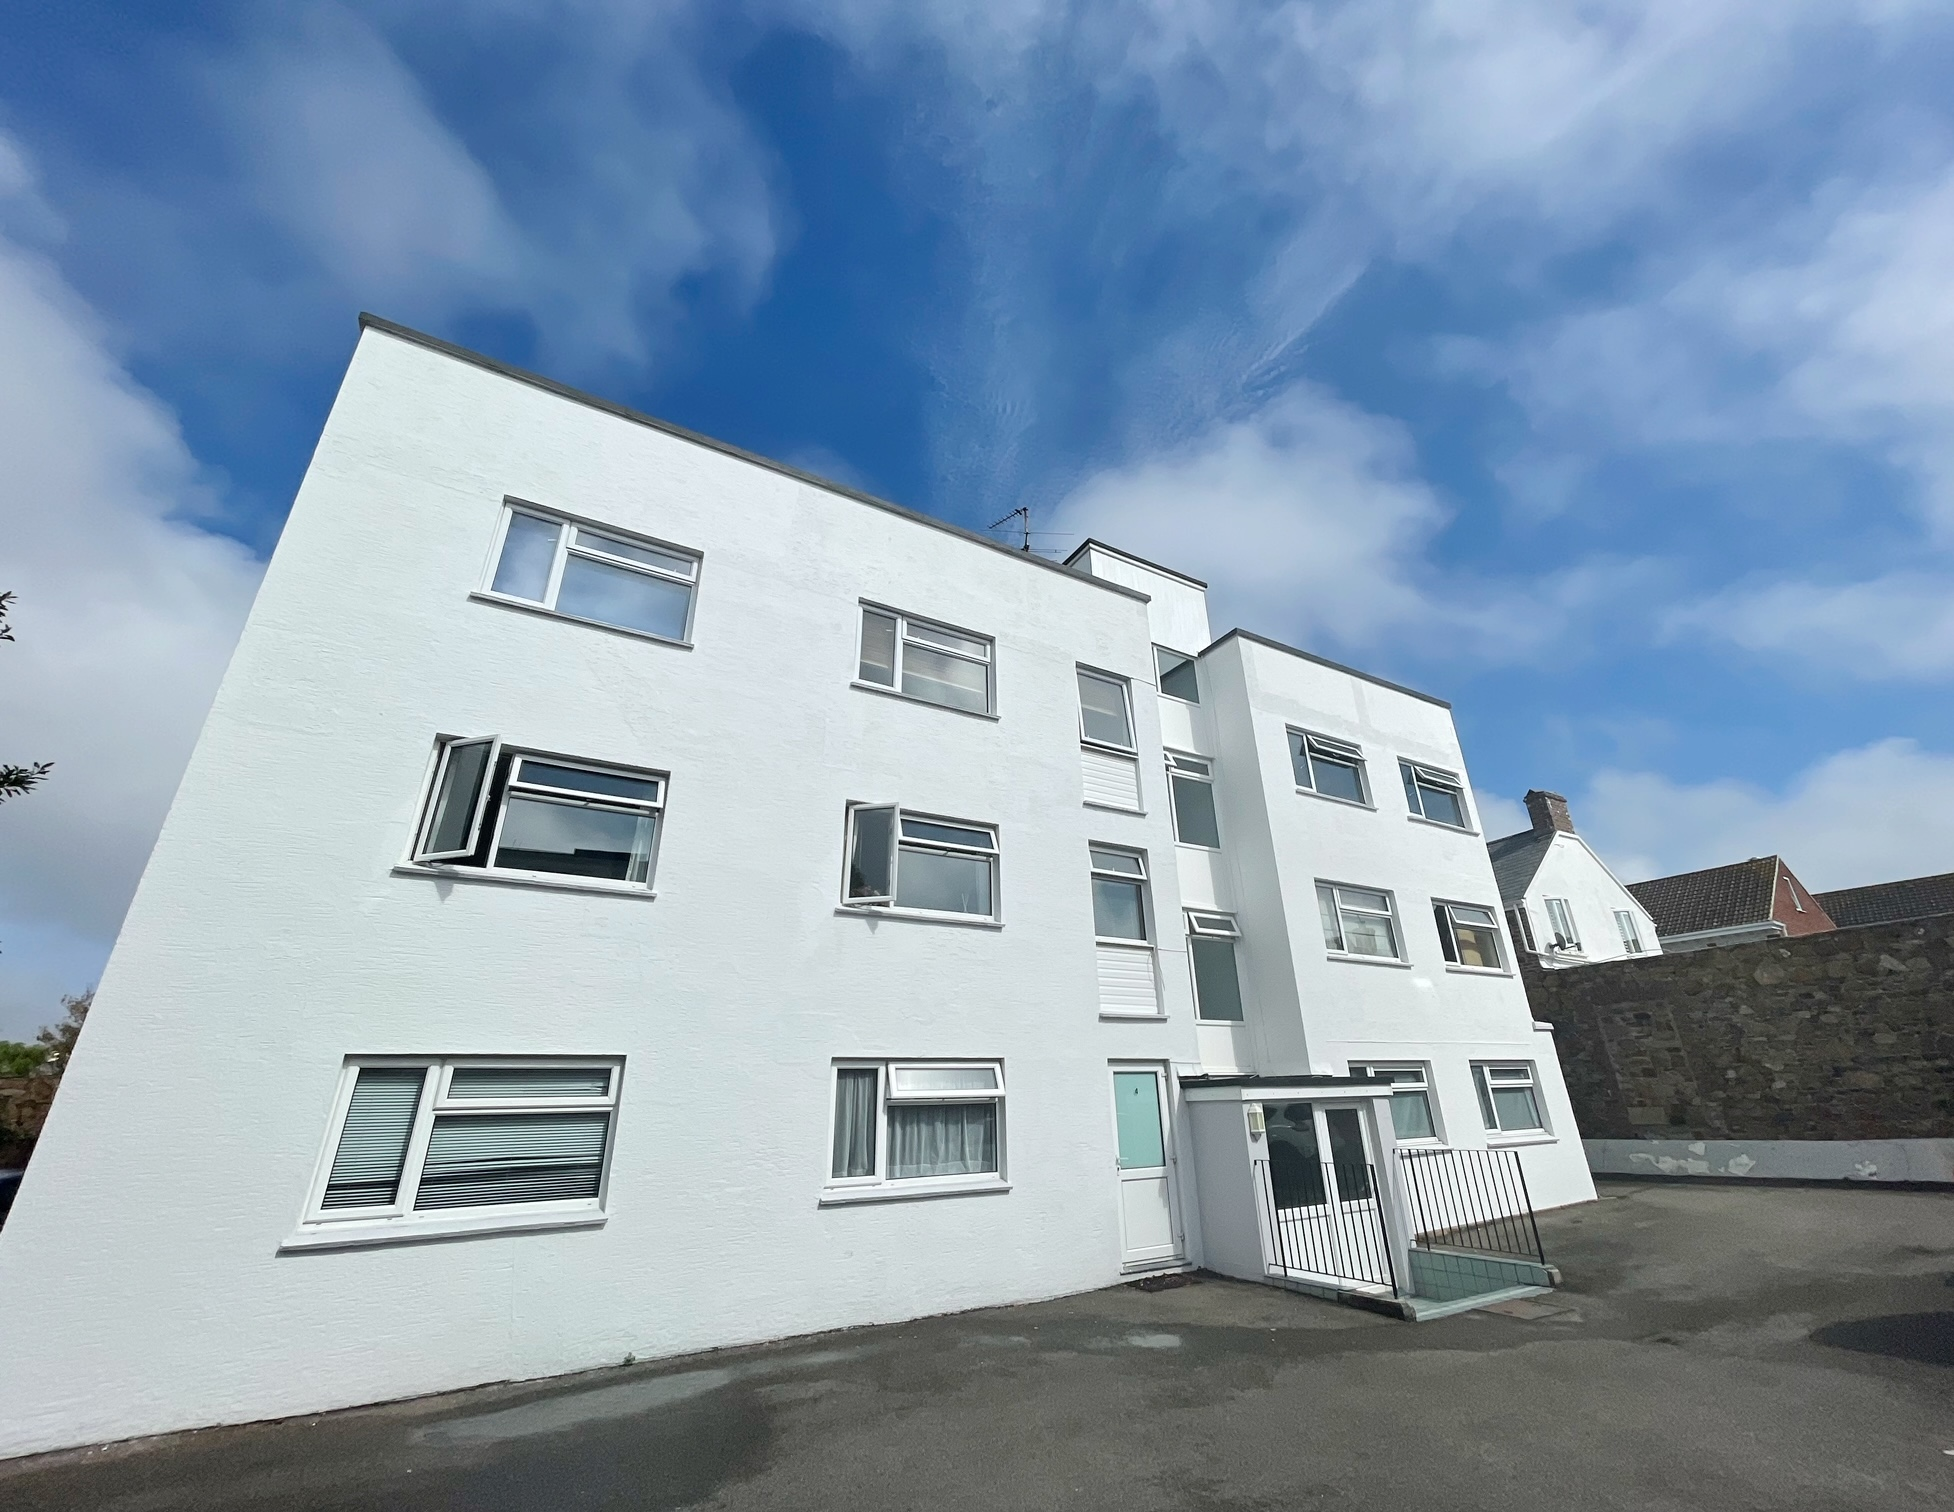 2 Bedroom Ground Floor Apartment with Parking, St Saviour, Available Now